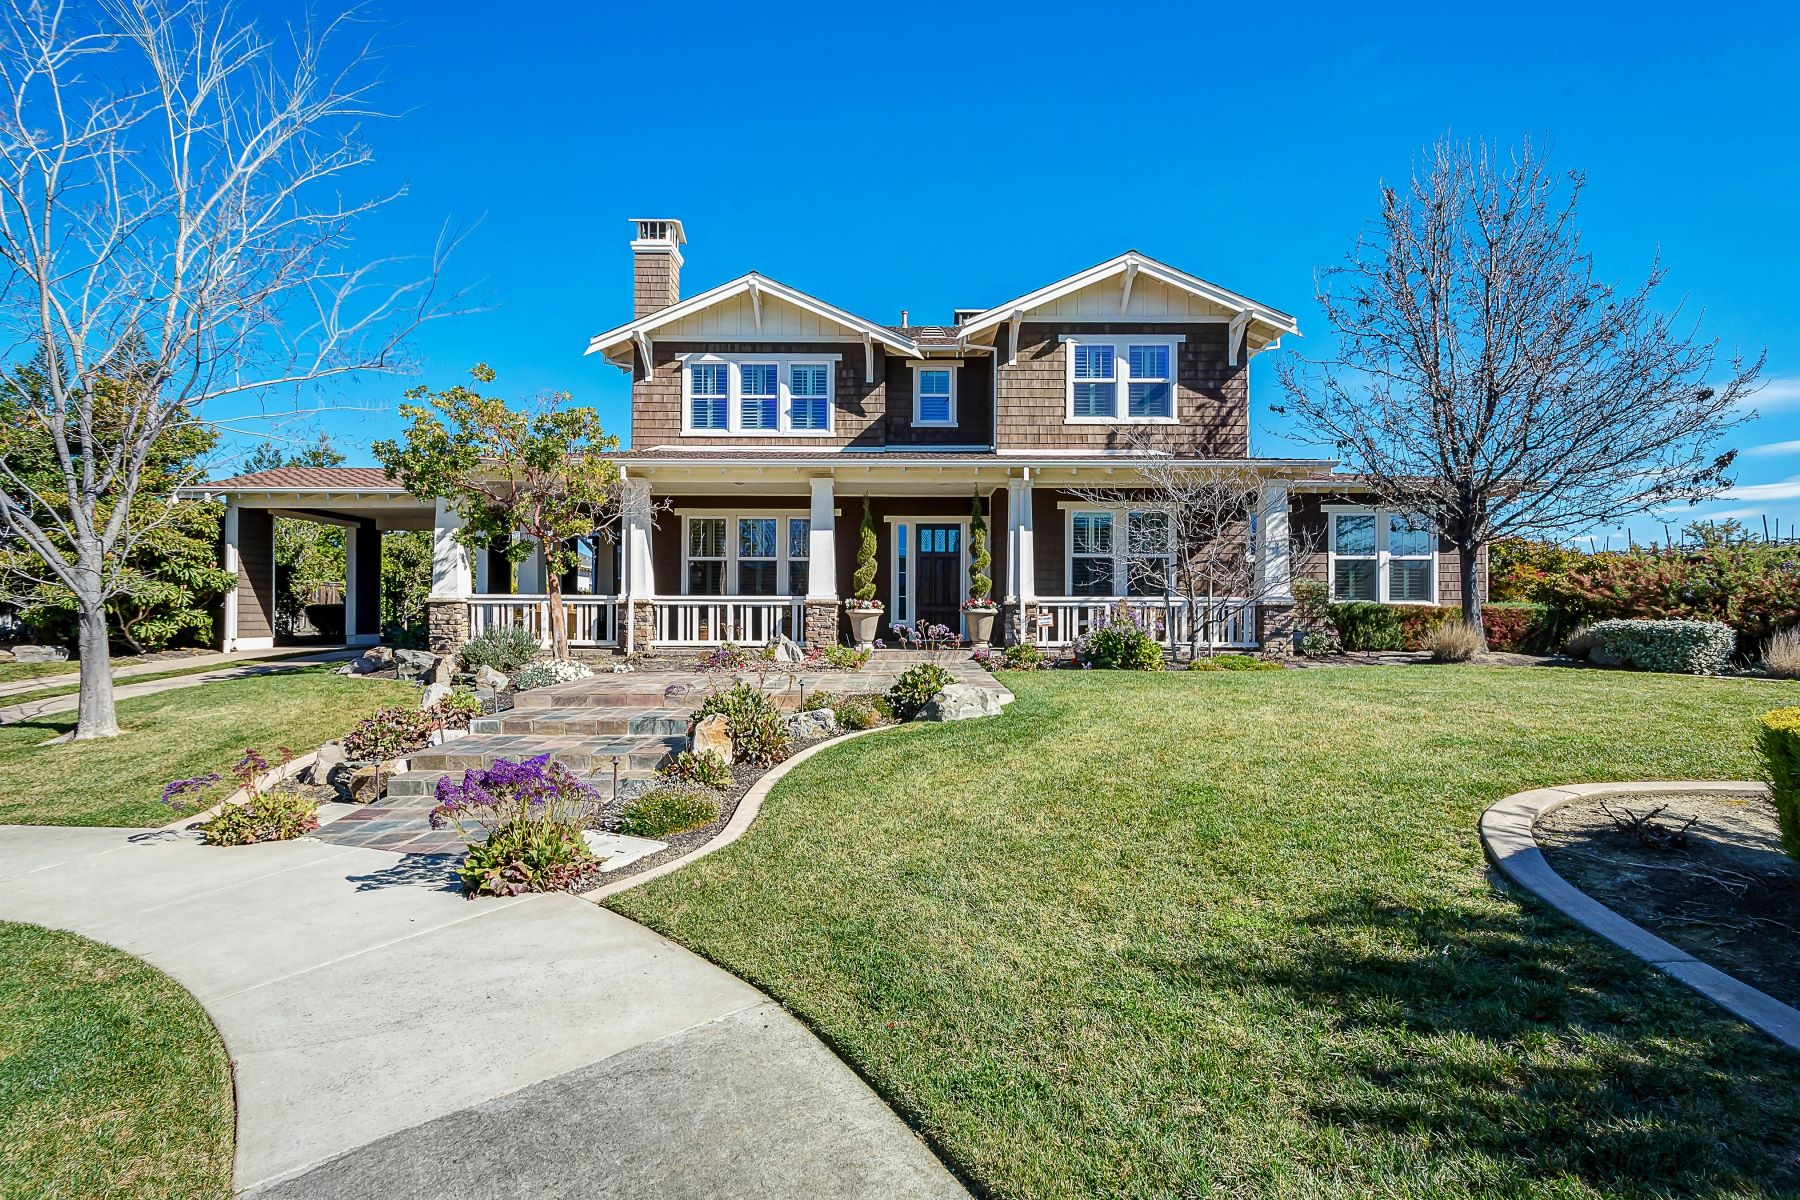 Single Family Home for Sale at Wine Country Beauty 3274 Derby Court Livermore, California 94550 United States